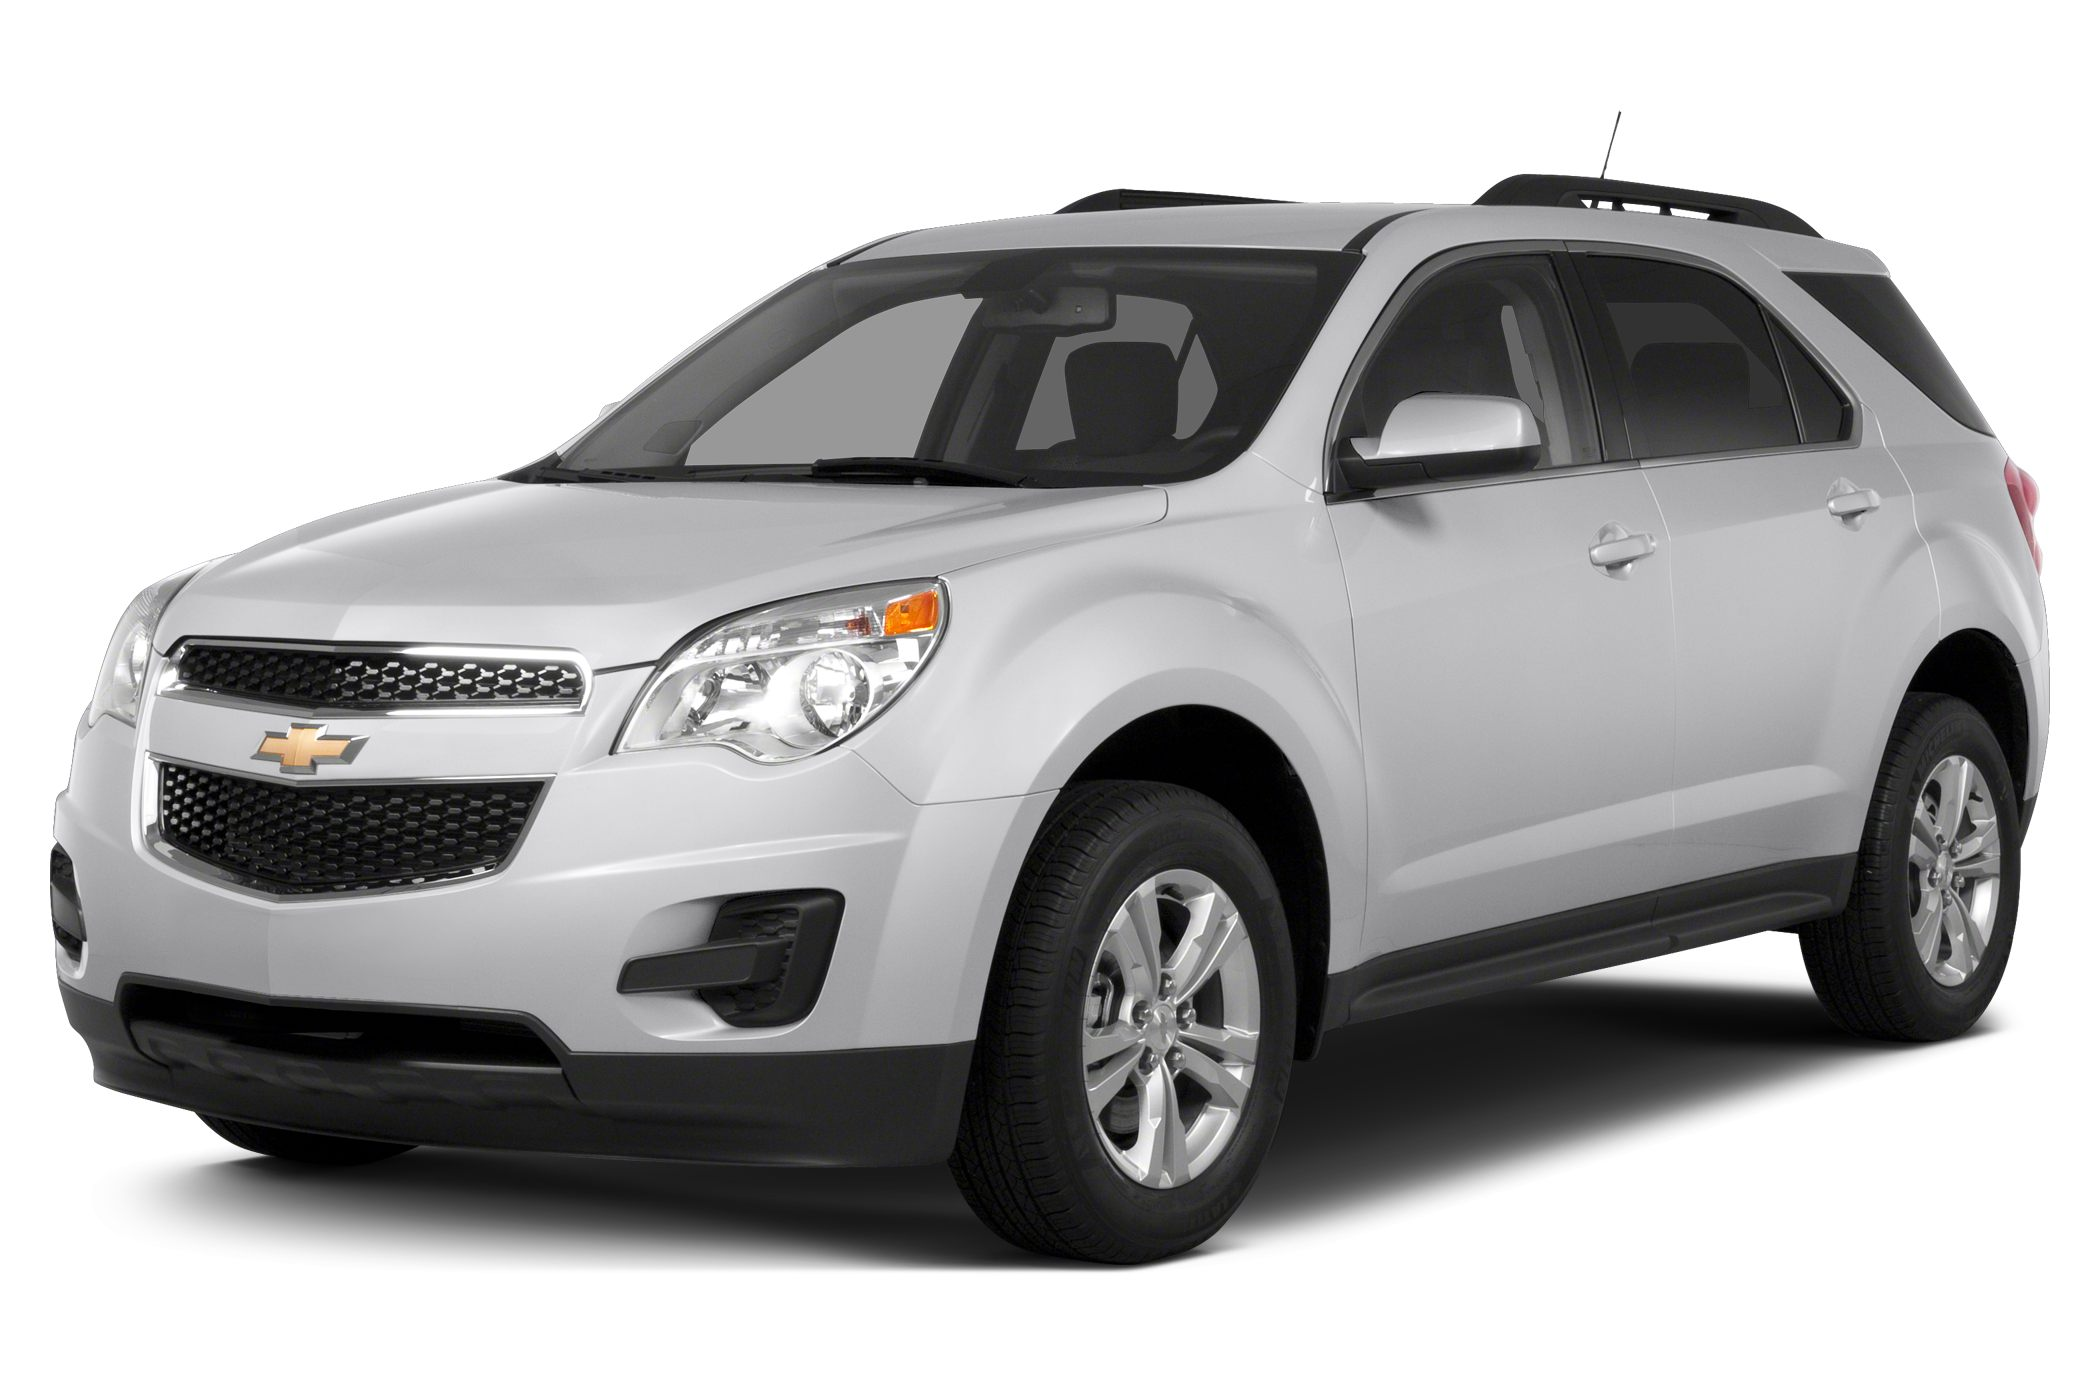 2014 Chevrolet Equinox 1LT SUV for sale in Decatur for $0 with 16,268 miles